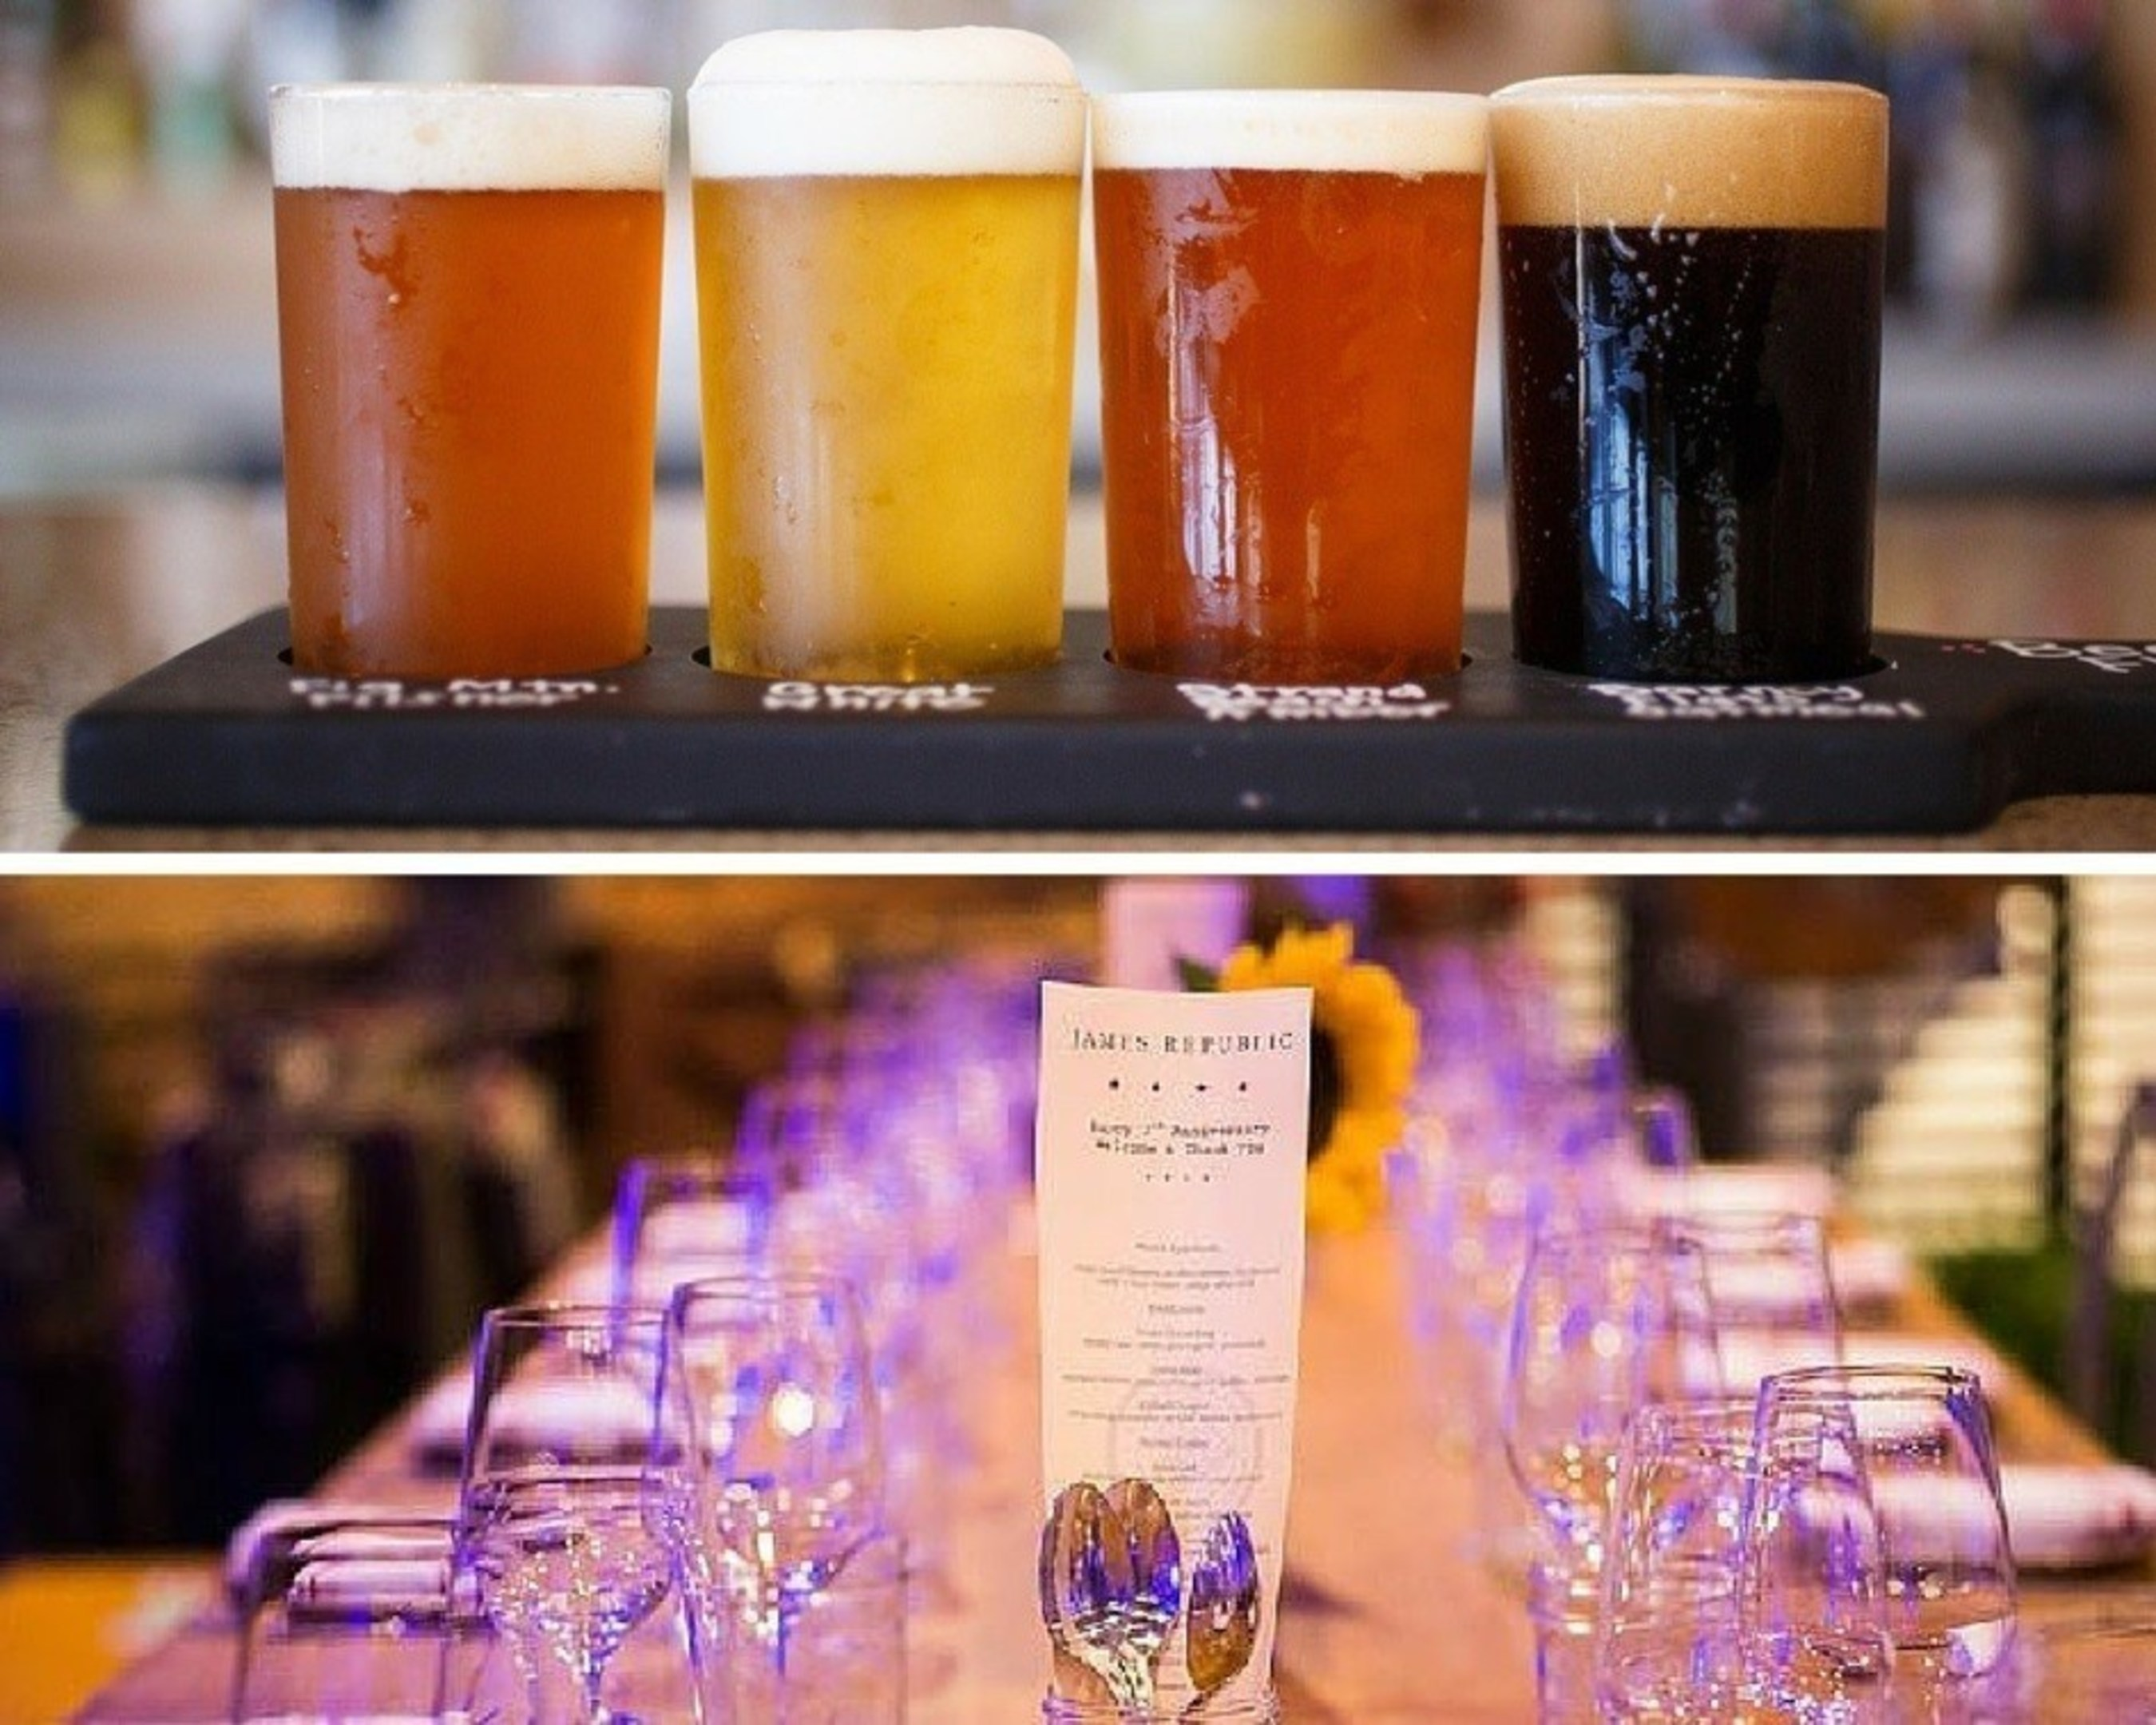 James Republic, a happening restaurant in Downtown Long Beach, is tapping into two top beer dinners and offering two of its popular Dinner Bell series. For information, call 1-562-435-8511 or visit www.marriott.com/LGBCY.